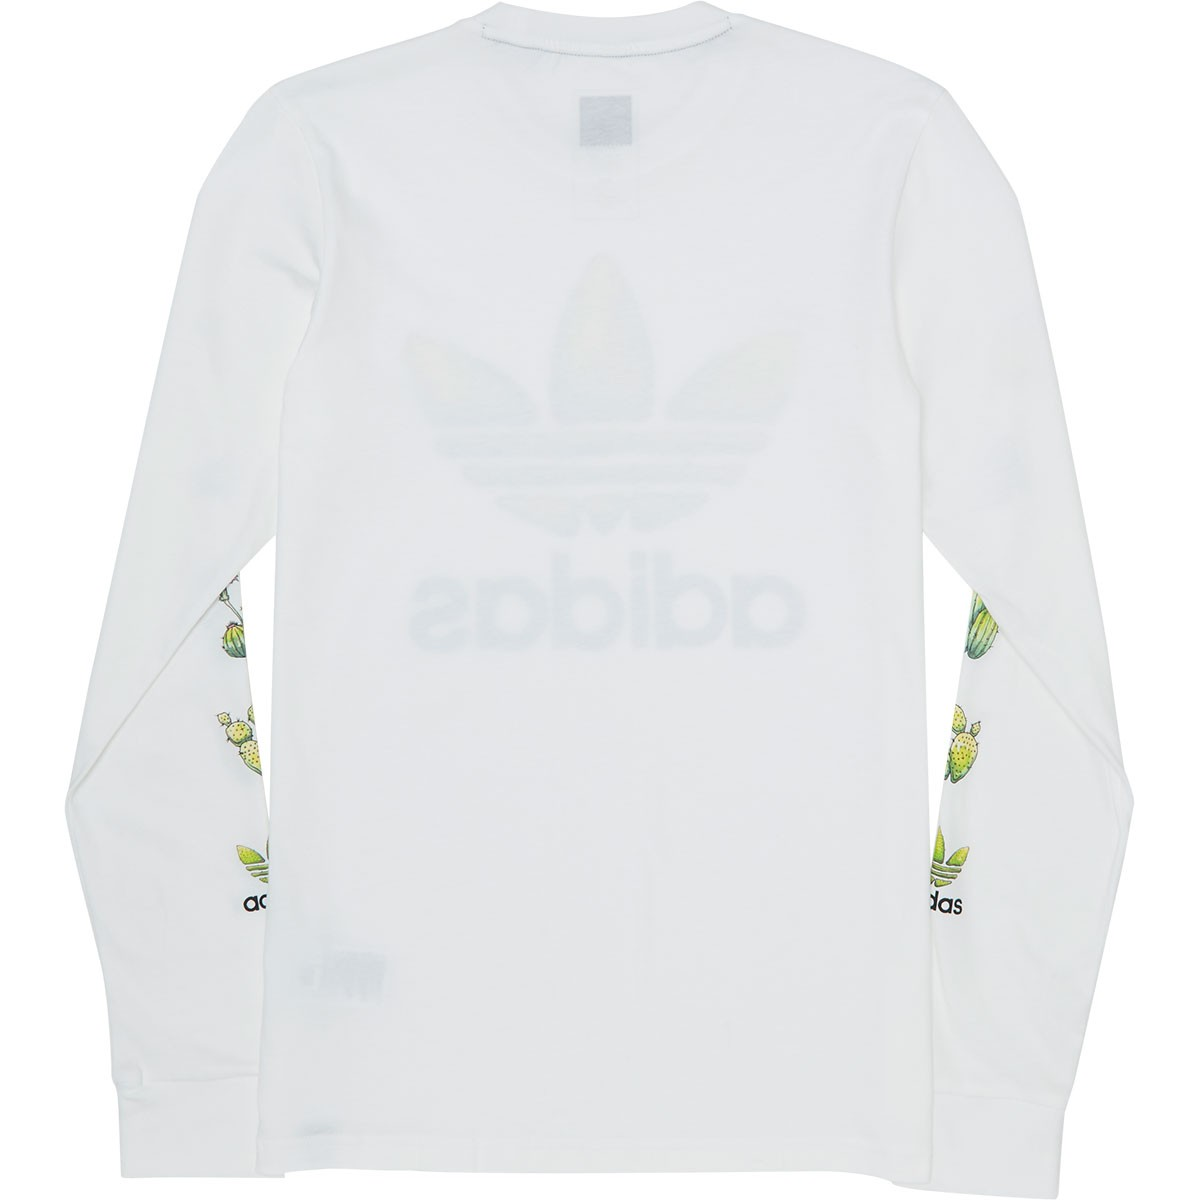 Adidas Cactus Long Sleeve T-Shirt - White